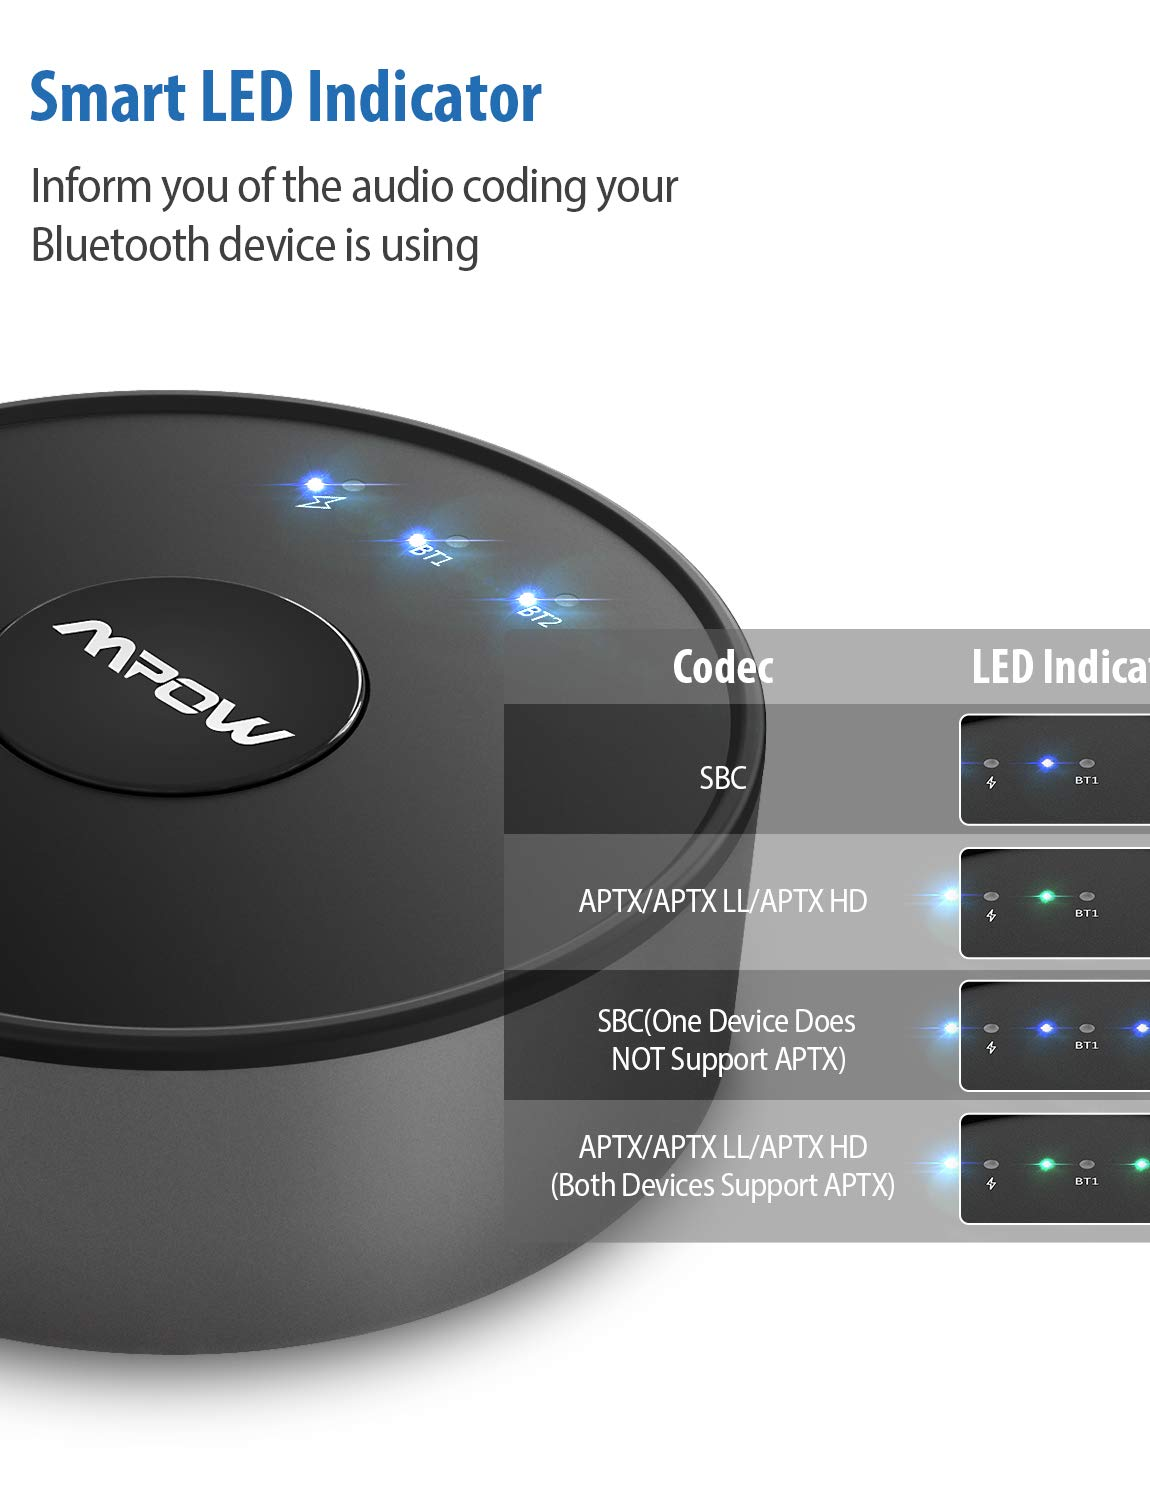 Mpow Bluetooth 5.0 Transmitter for TV, Bluetooth Audio Adapter with aptX, aptX-LL, aptX-HD for Original Voice Enjoyment, 50 Feet Range Bluetooth Kit with Hook & Loop Tape,No Battery for Always Standby by Mpow (Image #4)